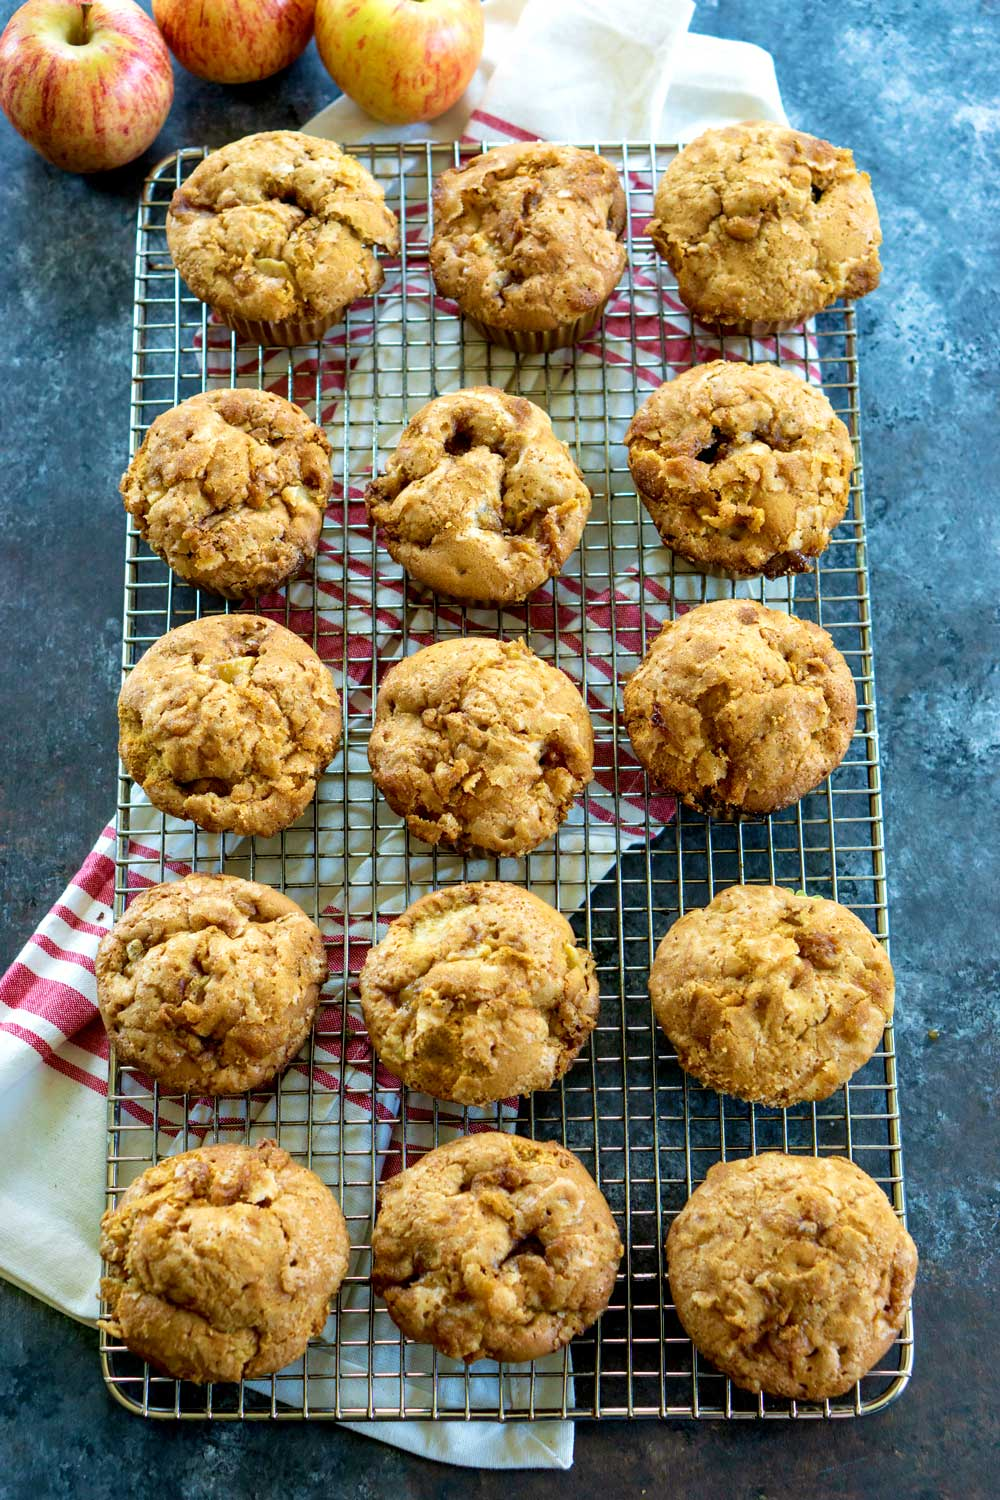 Apple cinnamon muffins on a wire rack